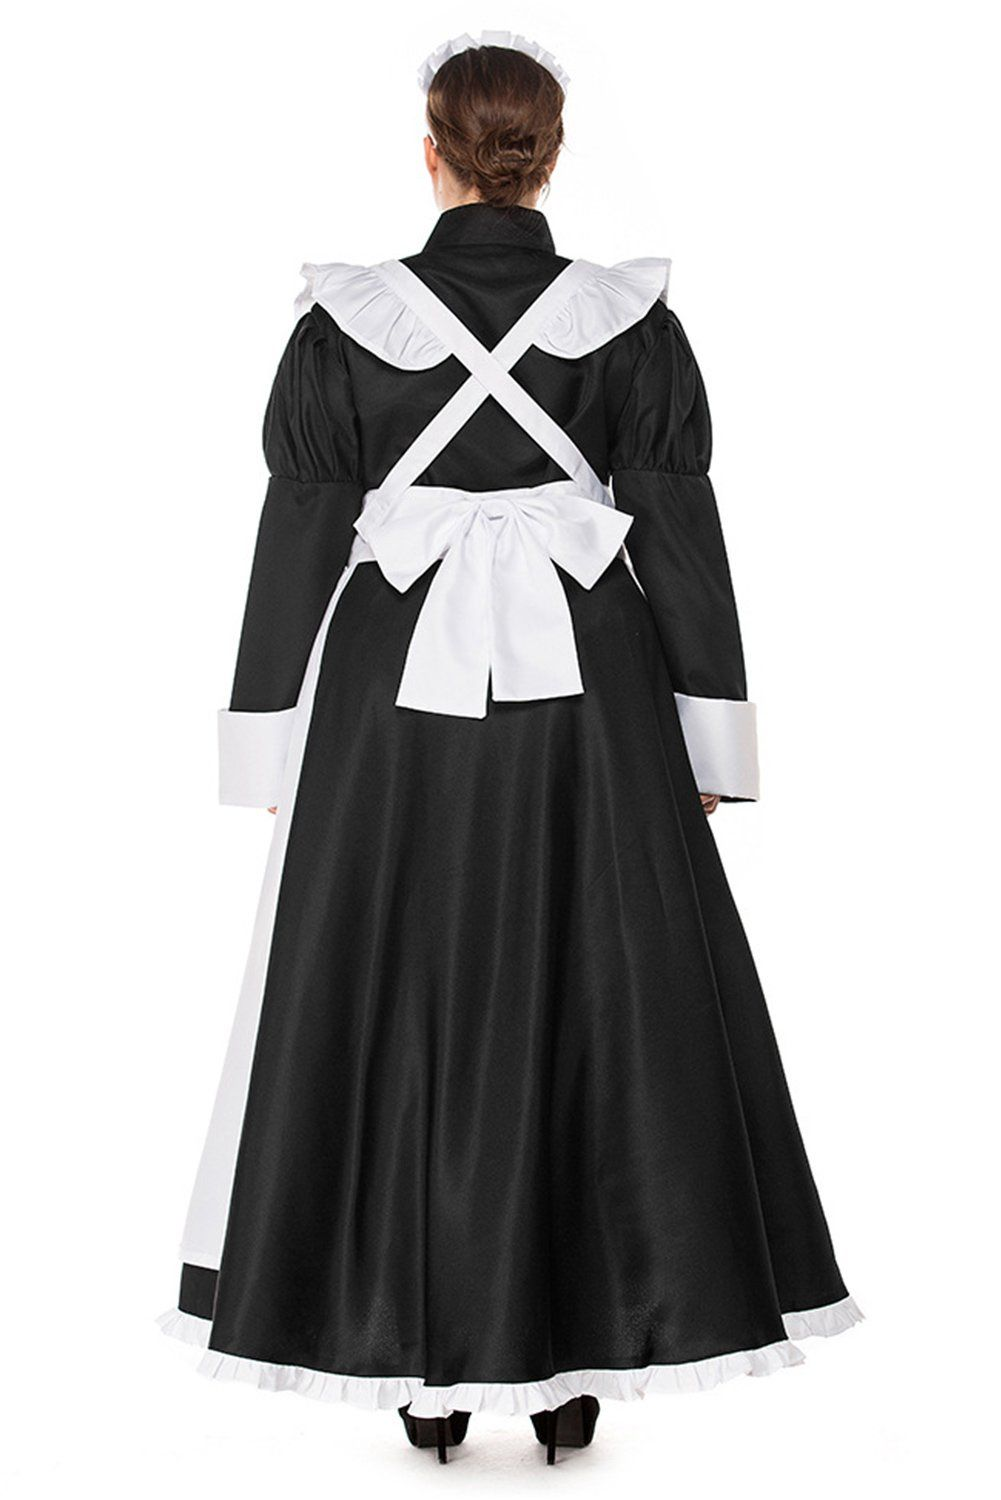 Pattistore womens halloween anime cosplay french apron